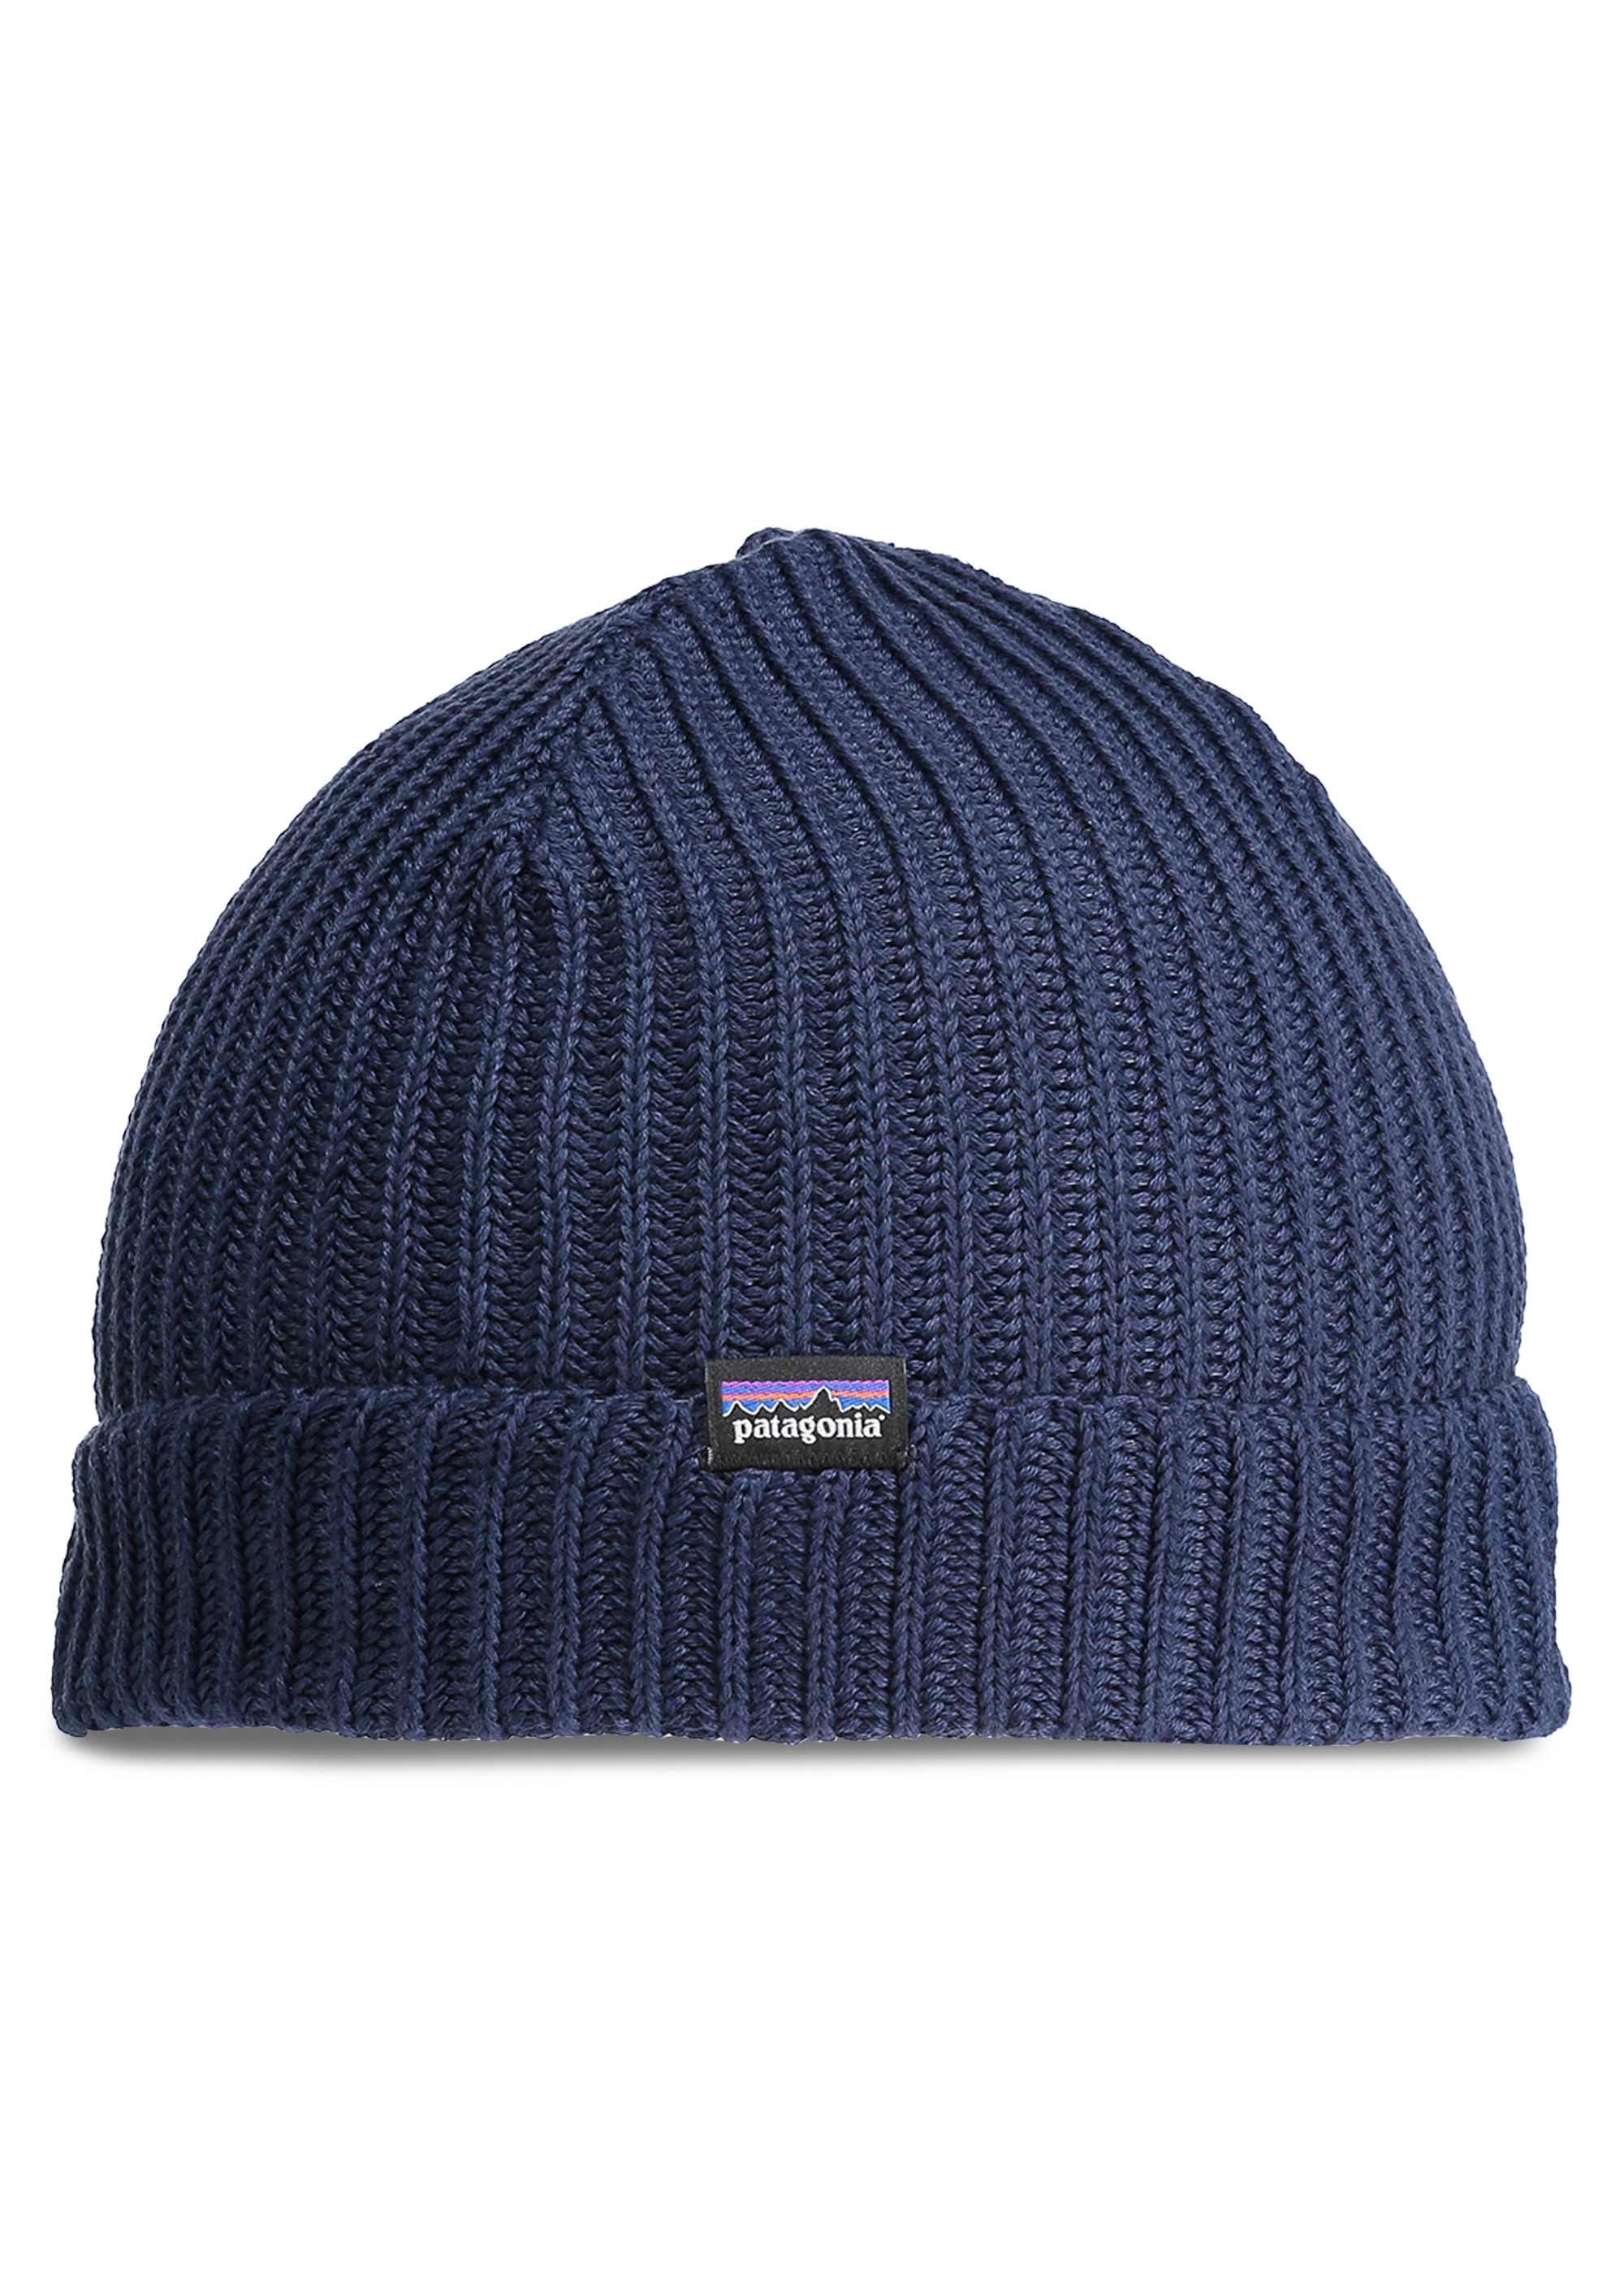 b4403405afd9f Patagonia Fishermans Rolled Beanie - Navy - Triads Mens from Triads UK